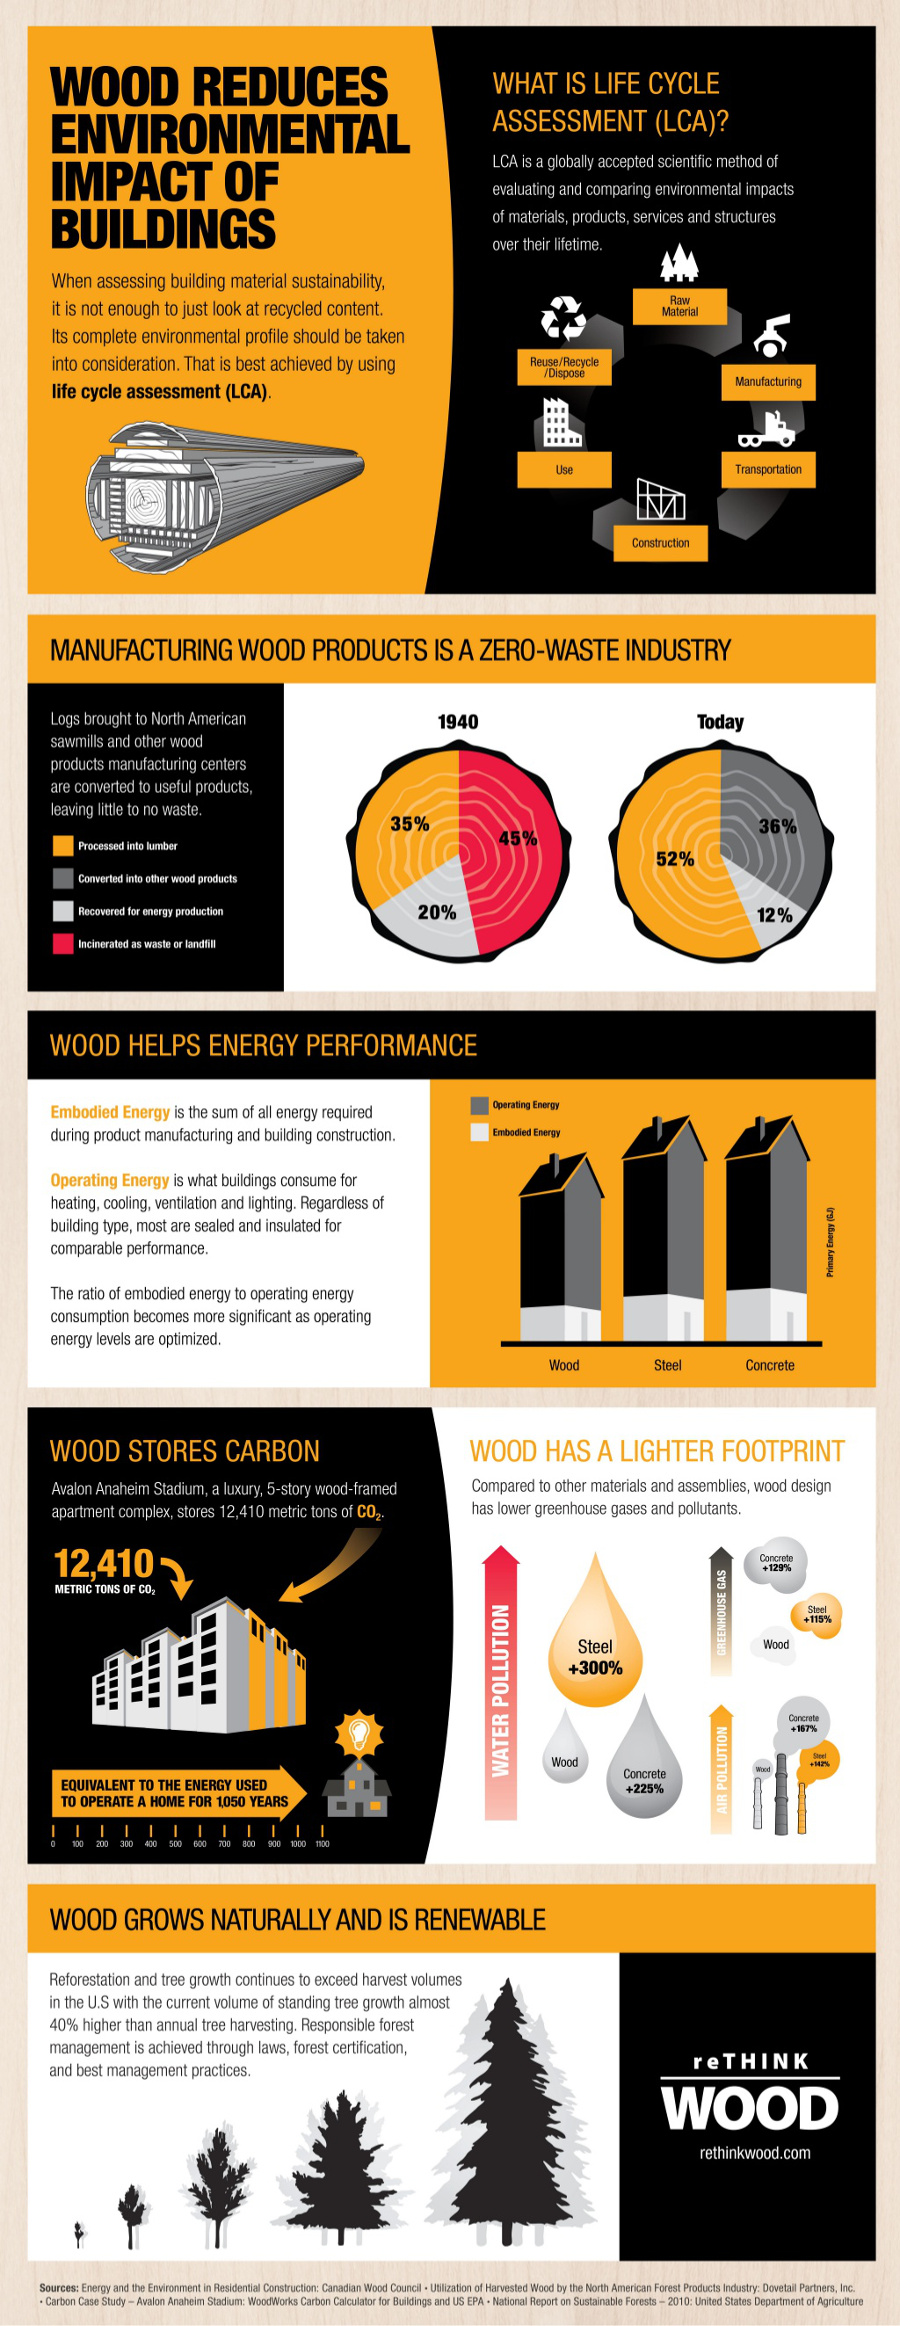 Rethink Wood infographic